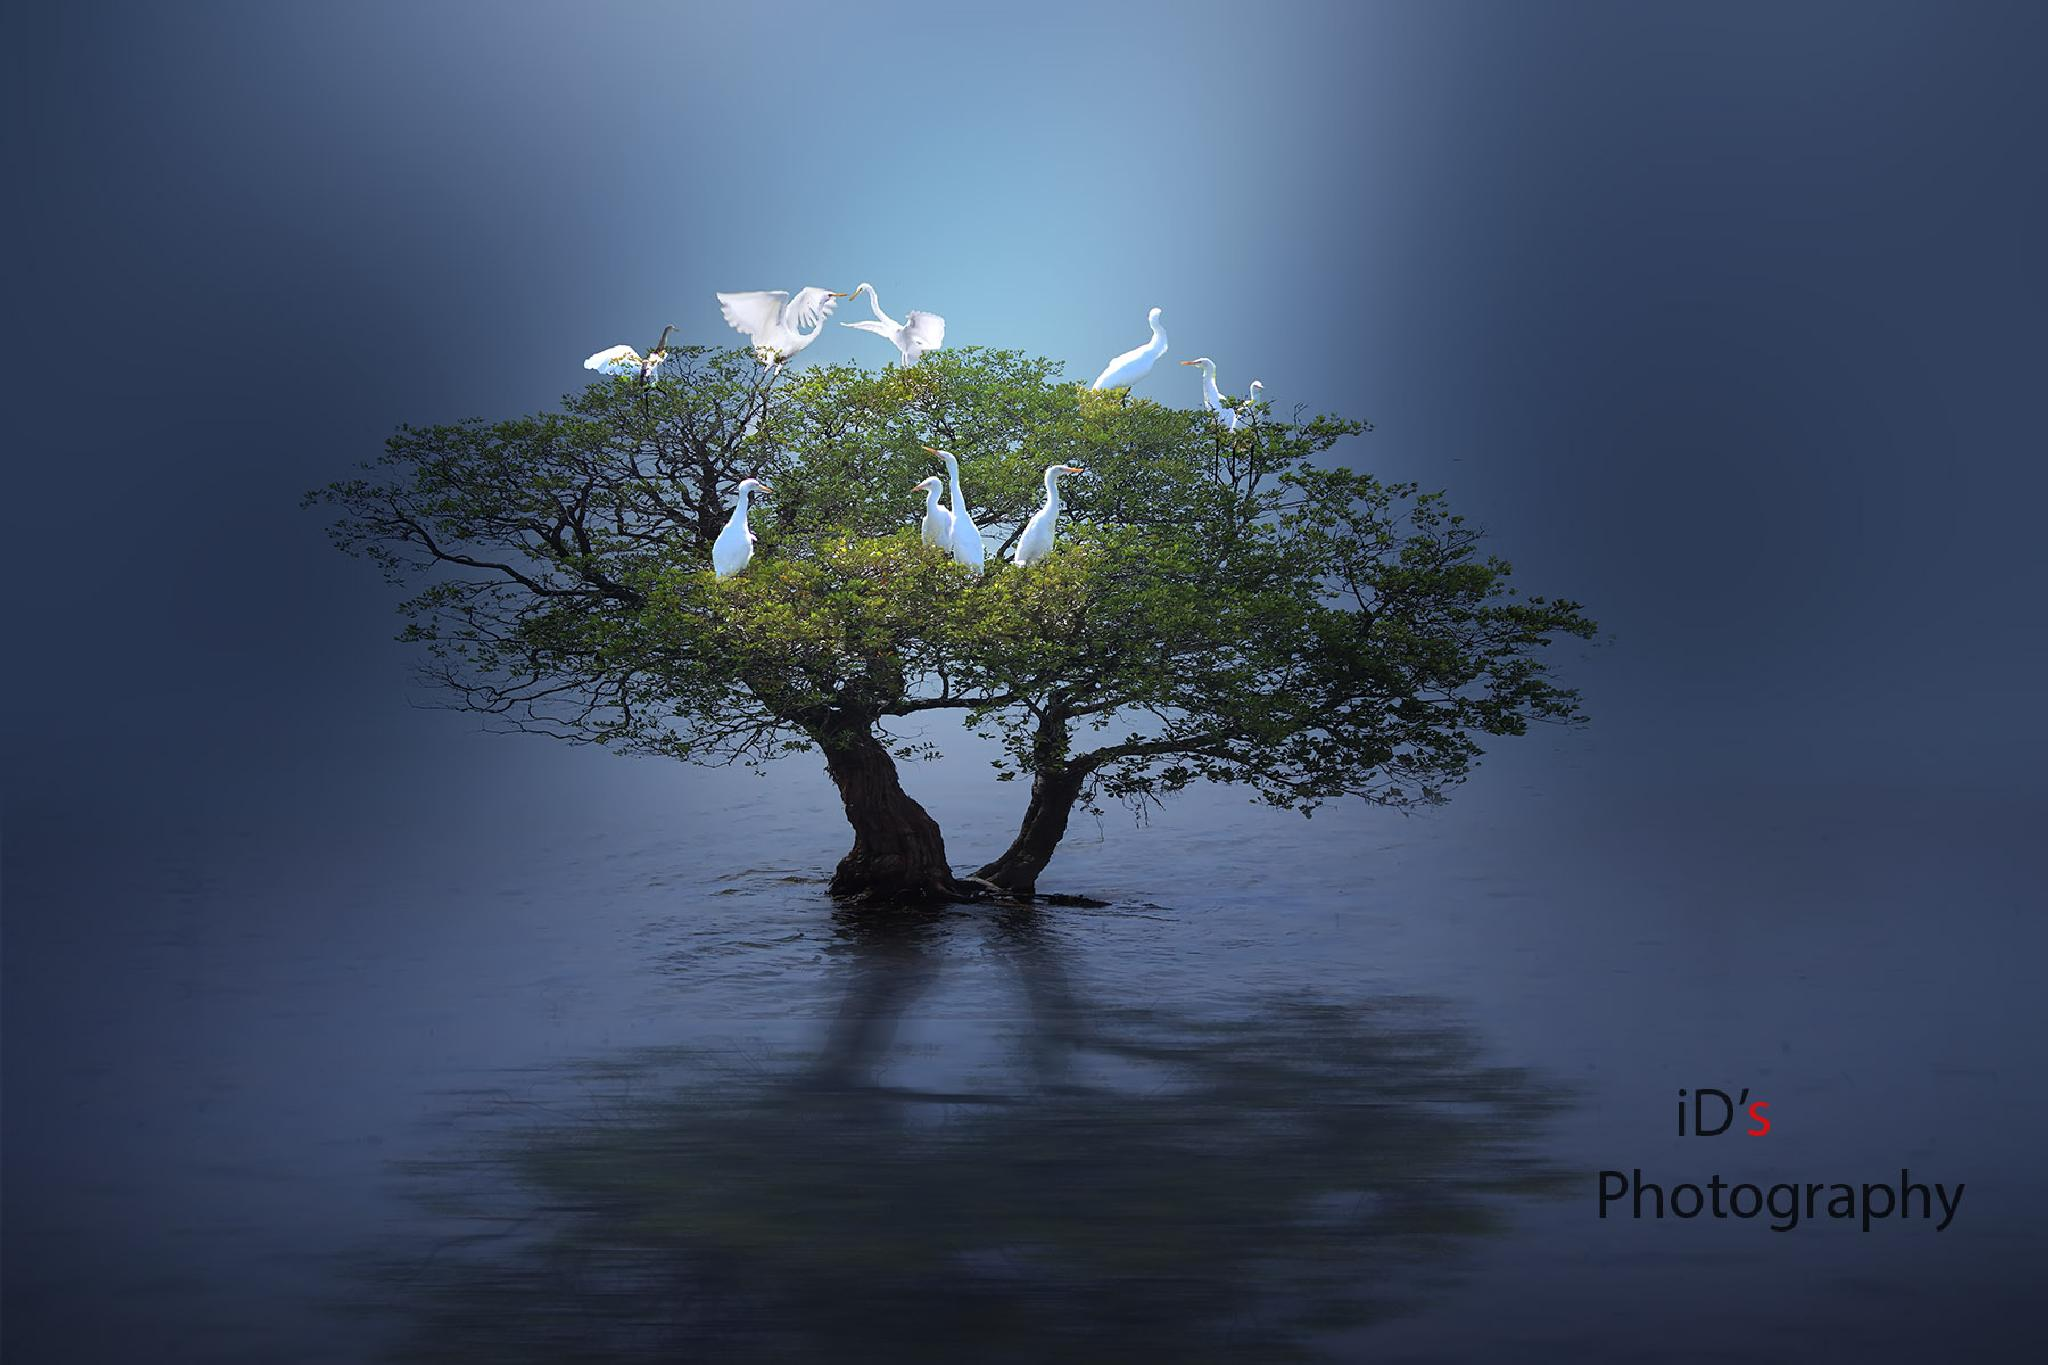 Untitled by iD's